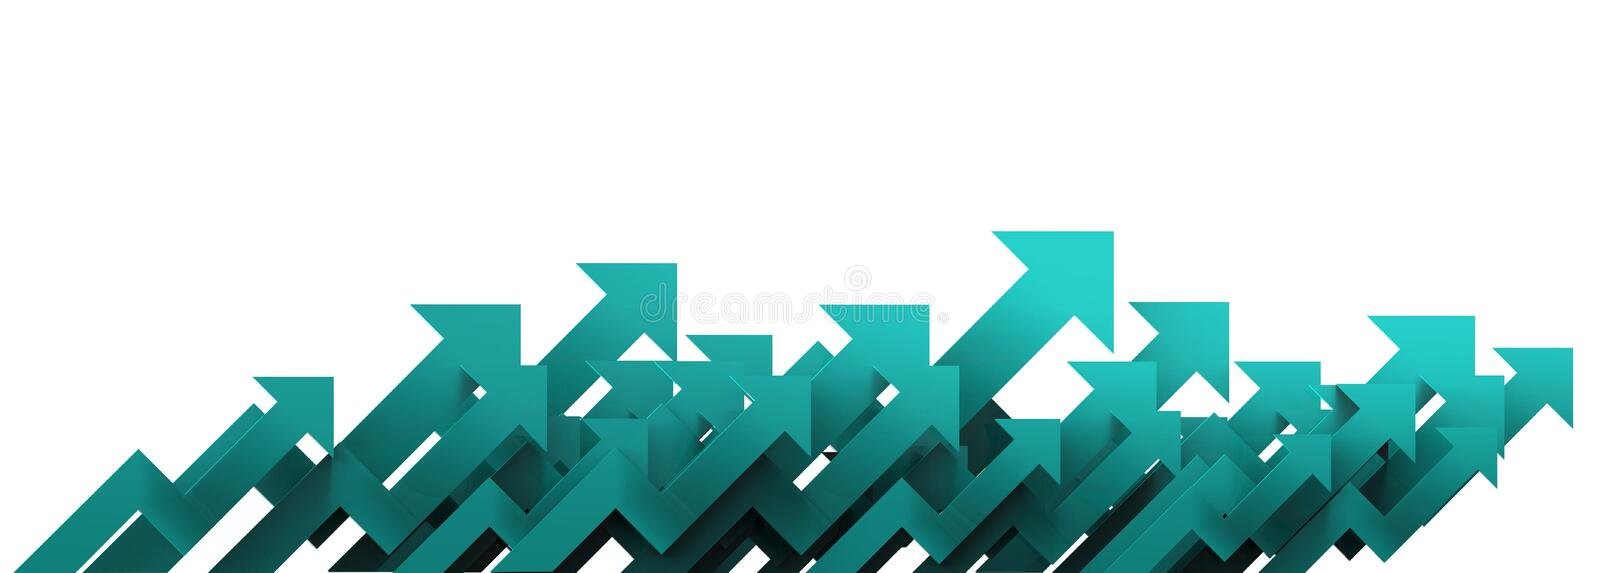 Green arrow. Growing business background concept.3D rendering stock photography